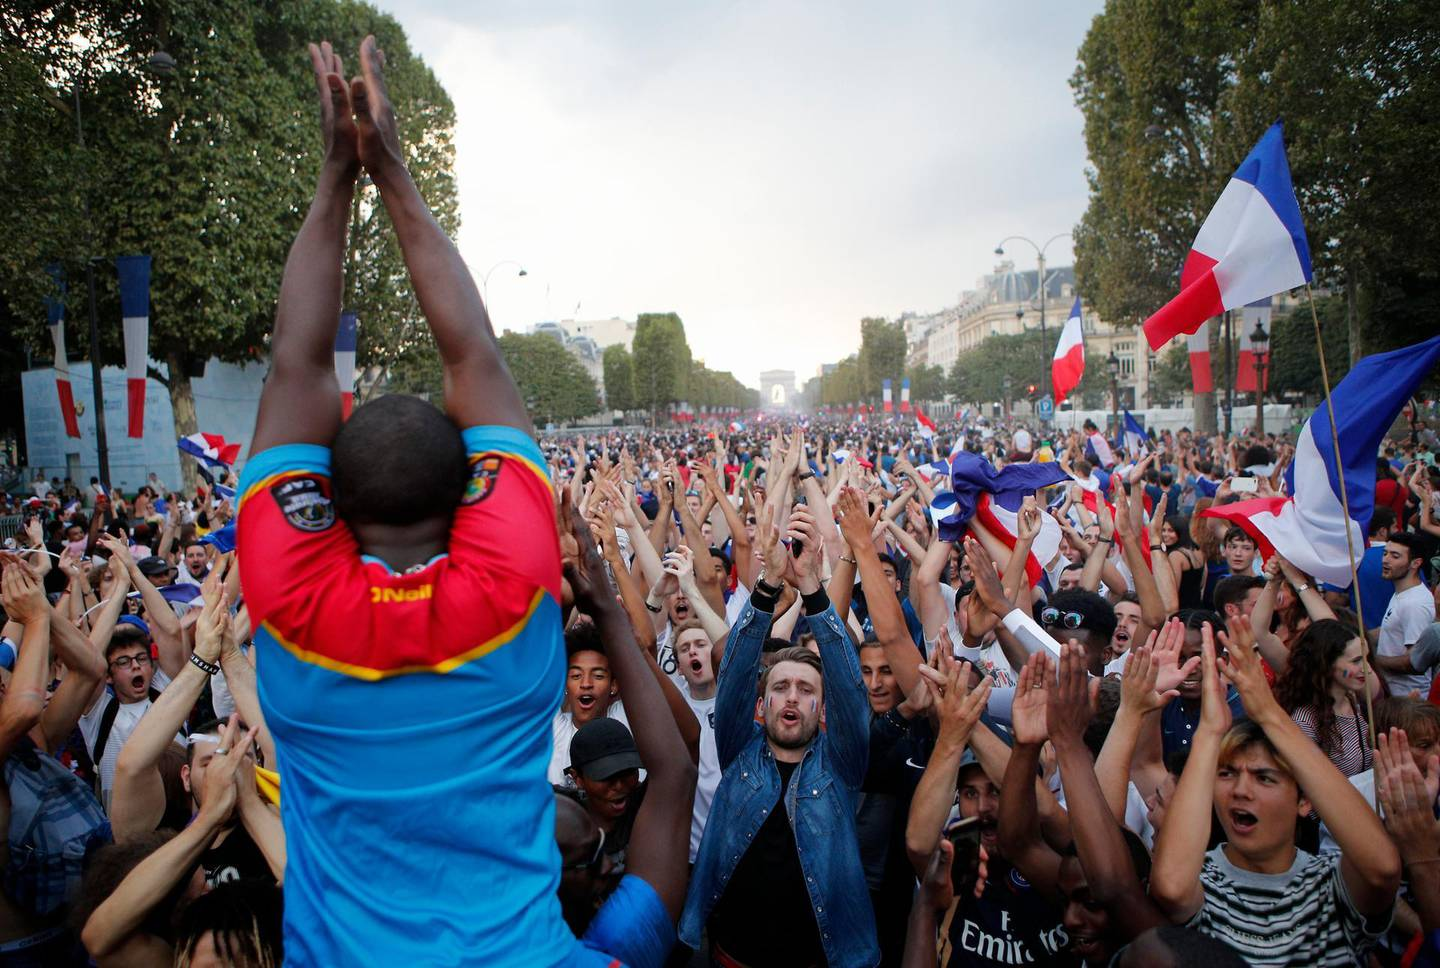 People clap their hands on the Champs Elysees avenue after France won the soccer World Cup final match between France and Croatia, Sunday, July 15, 2018 in Paris. France won its second World Cup title by beating Croatia 4-2 . (AP Photo/Francois Mori)